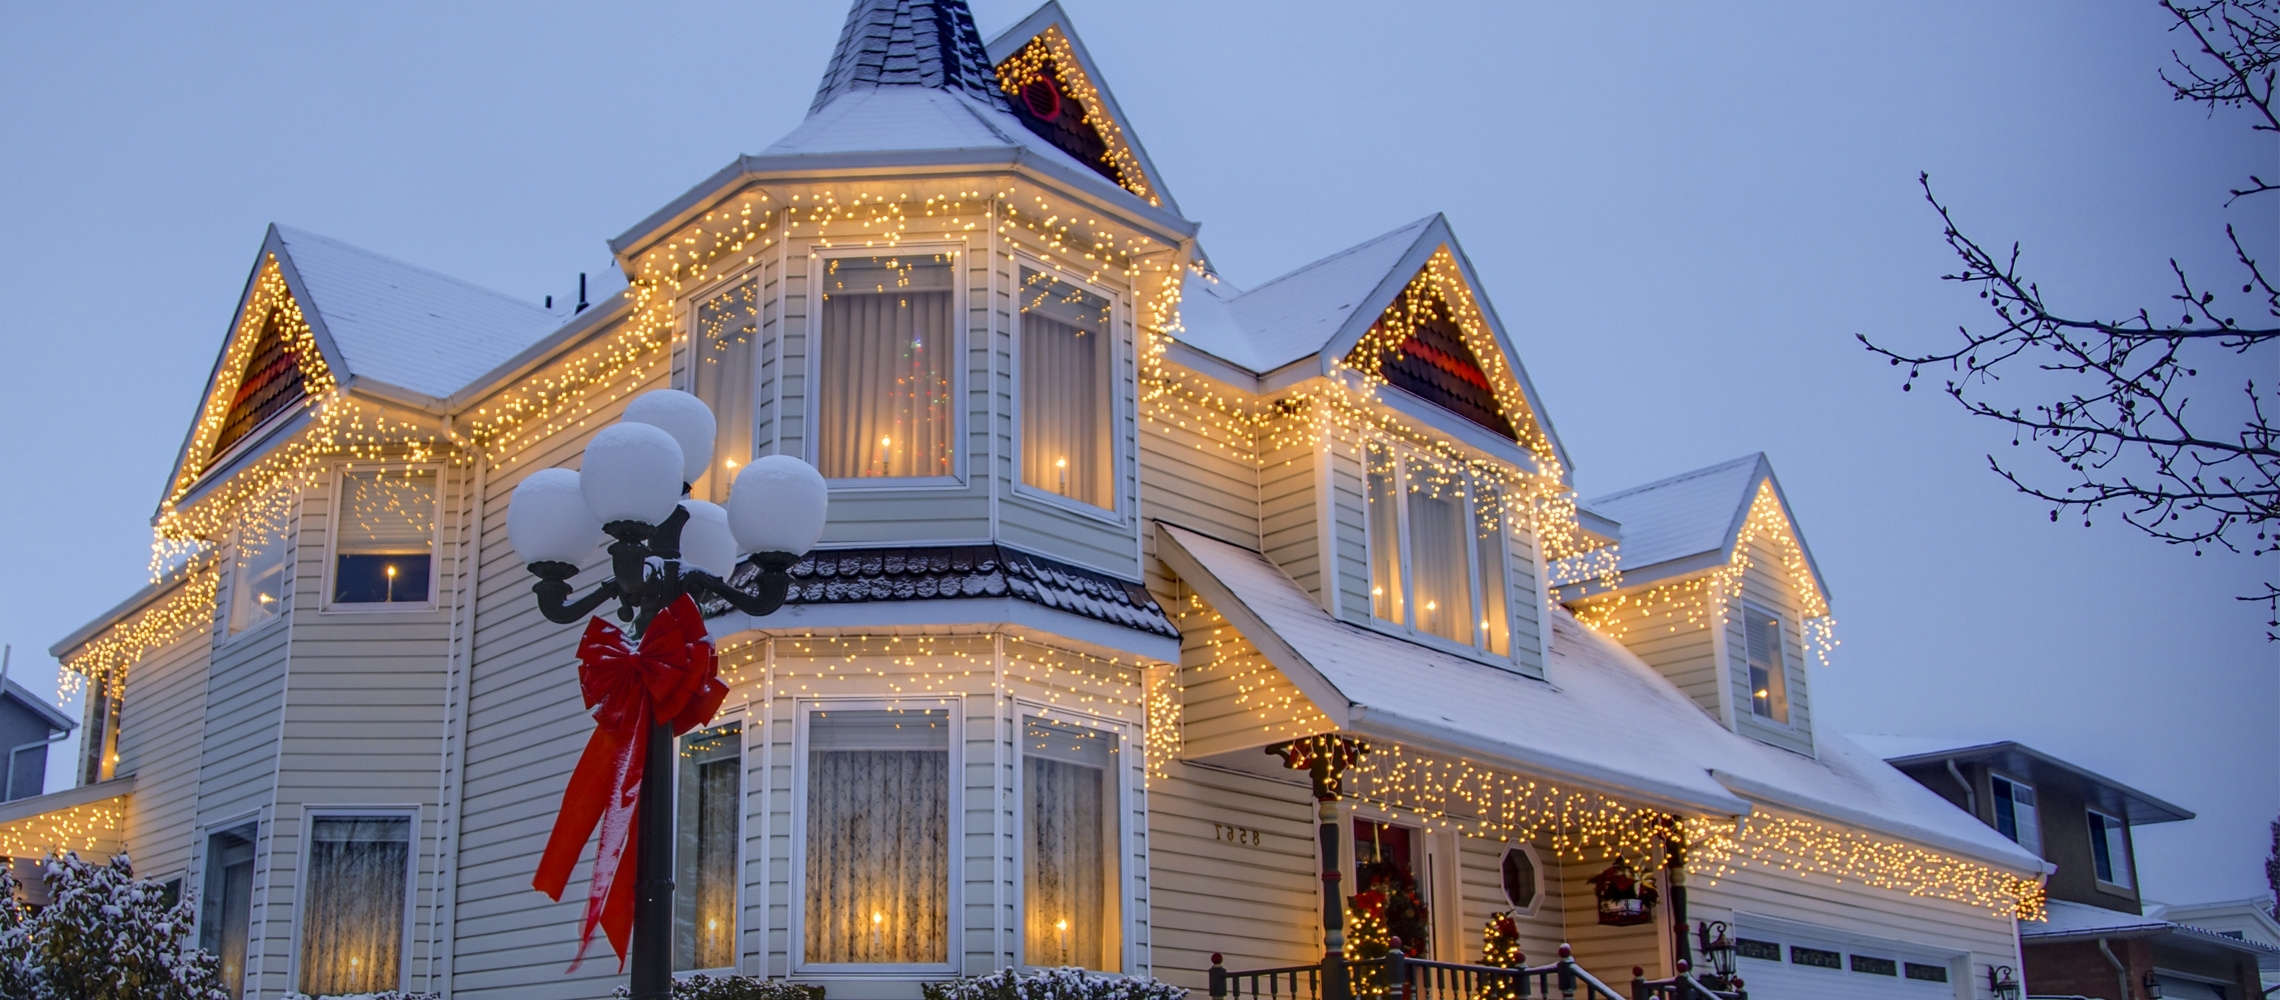 Latest Christmas Lights Ideas For The Roof Intended For Hanging Outdoor Christmas Lights In Roof (View 3 of 20)